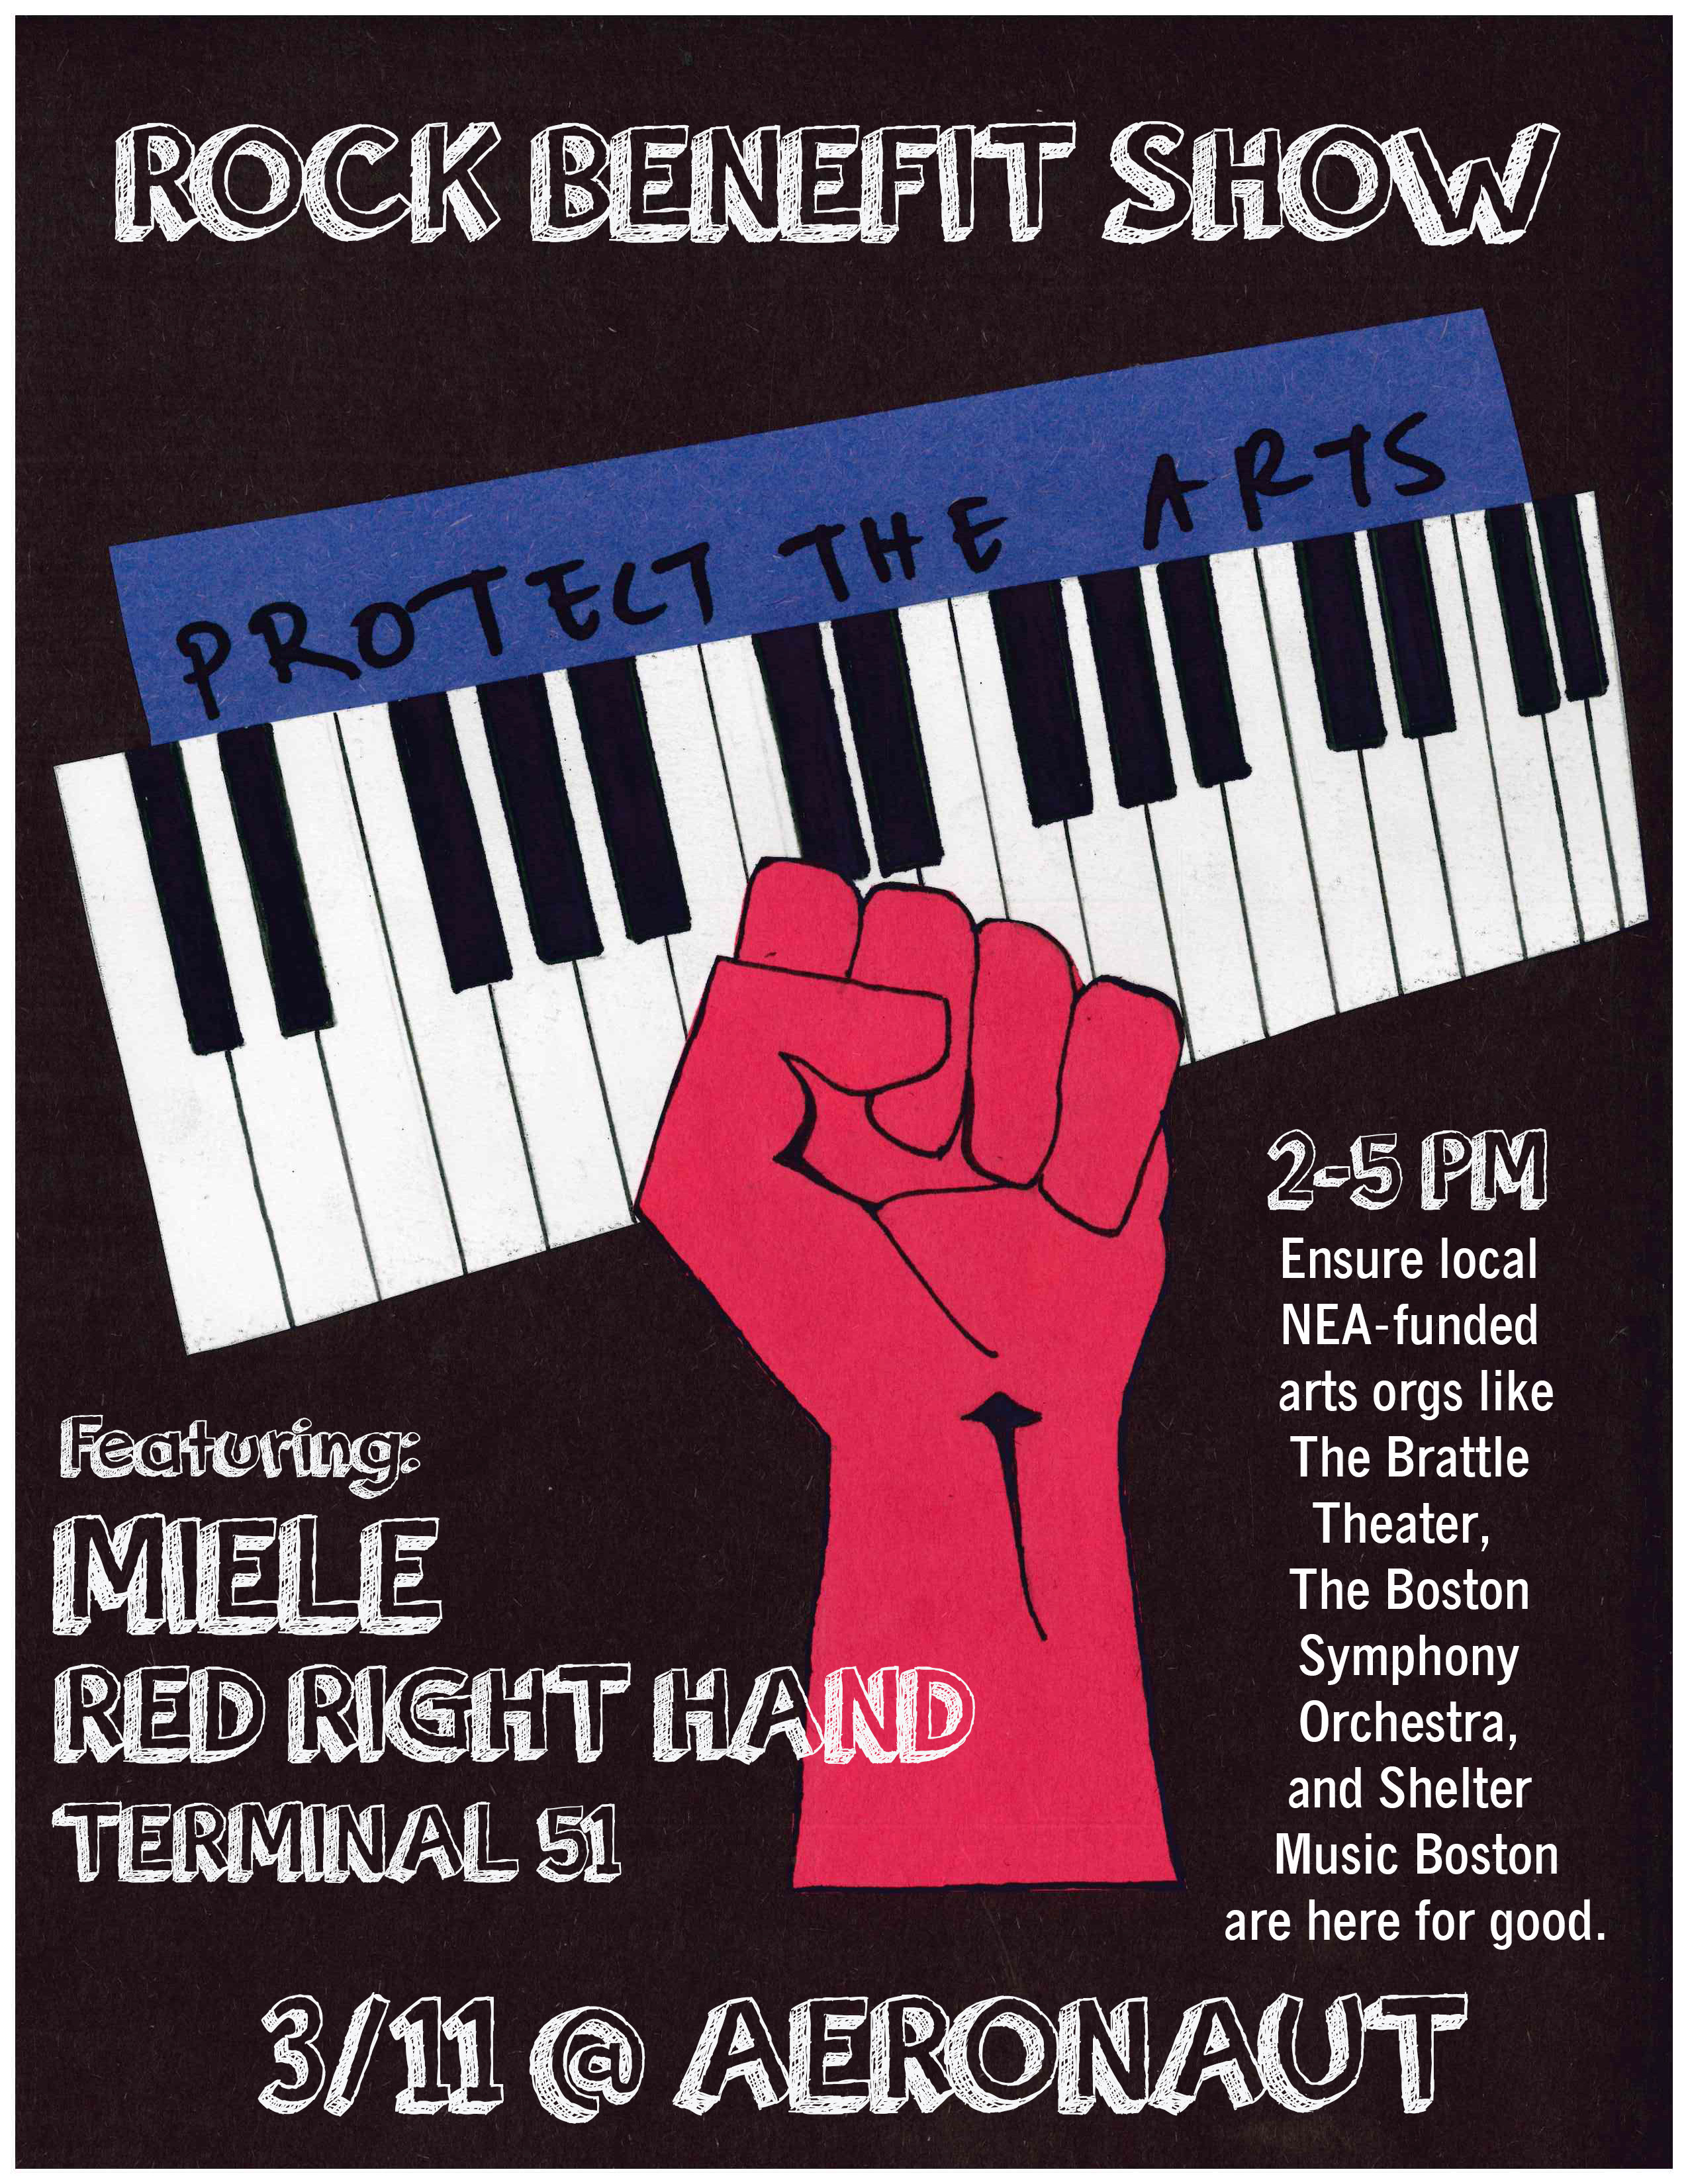 Rock Benefit Show for the Arts- Featuring Miele, Red Right Hand, and Terminal 51 @ AERONAUT